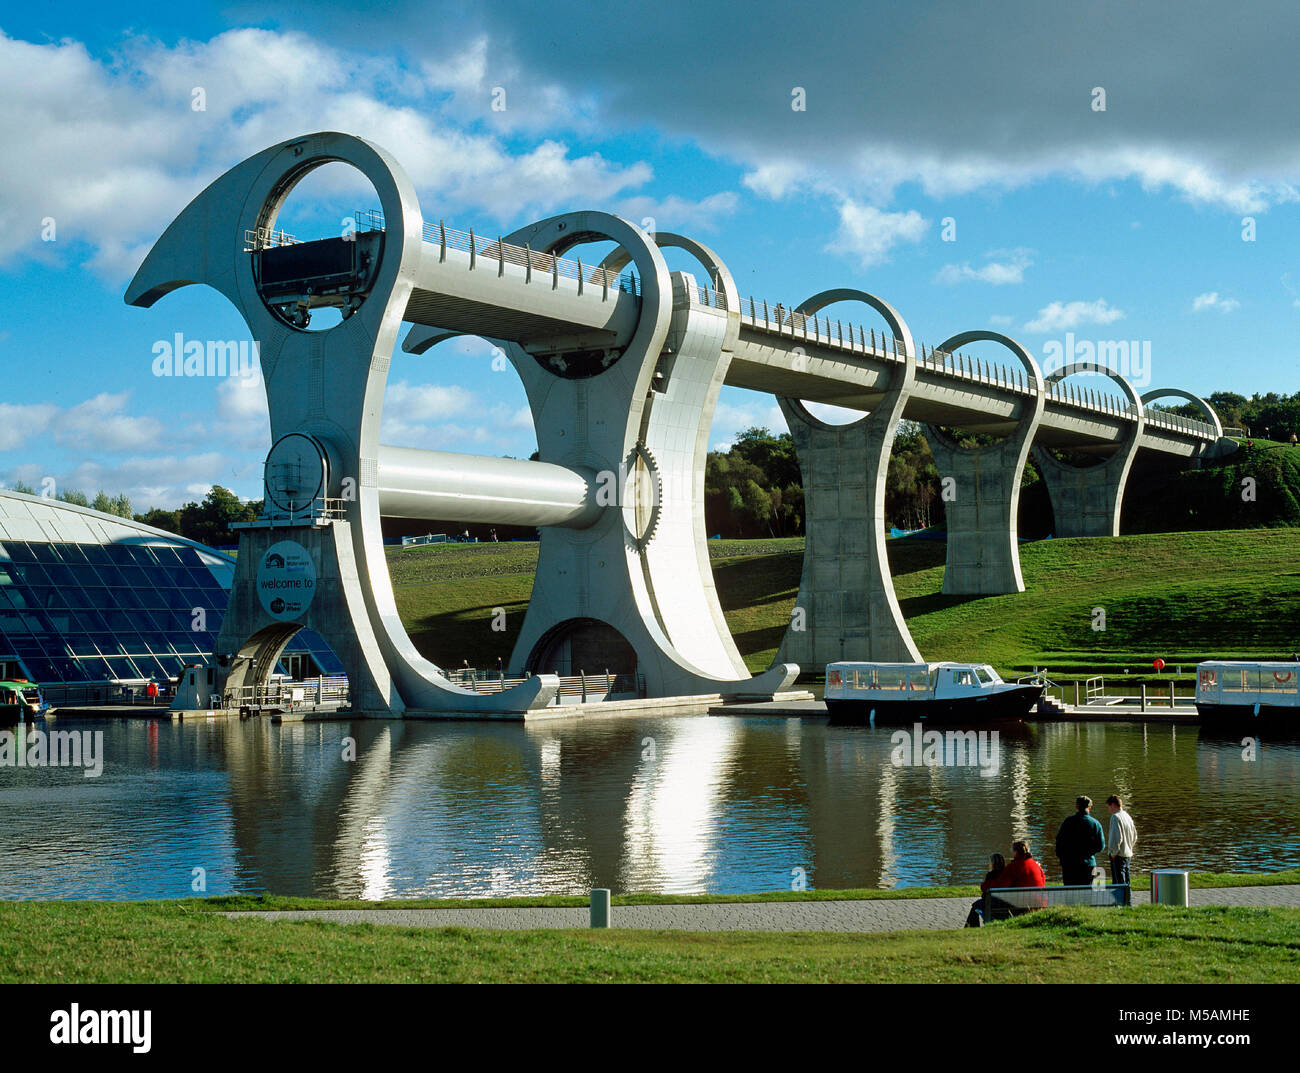 Falkirk Wheel, a rotating boat lift opened in 2002 to connect the Forth and Clyde Canal with the Union Canal 79ft - Stock Image